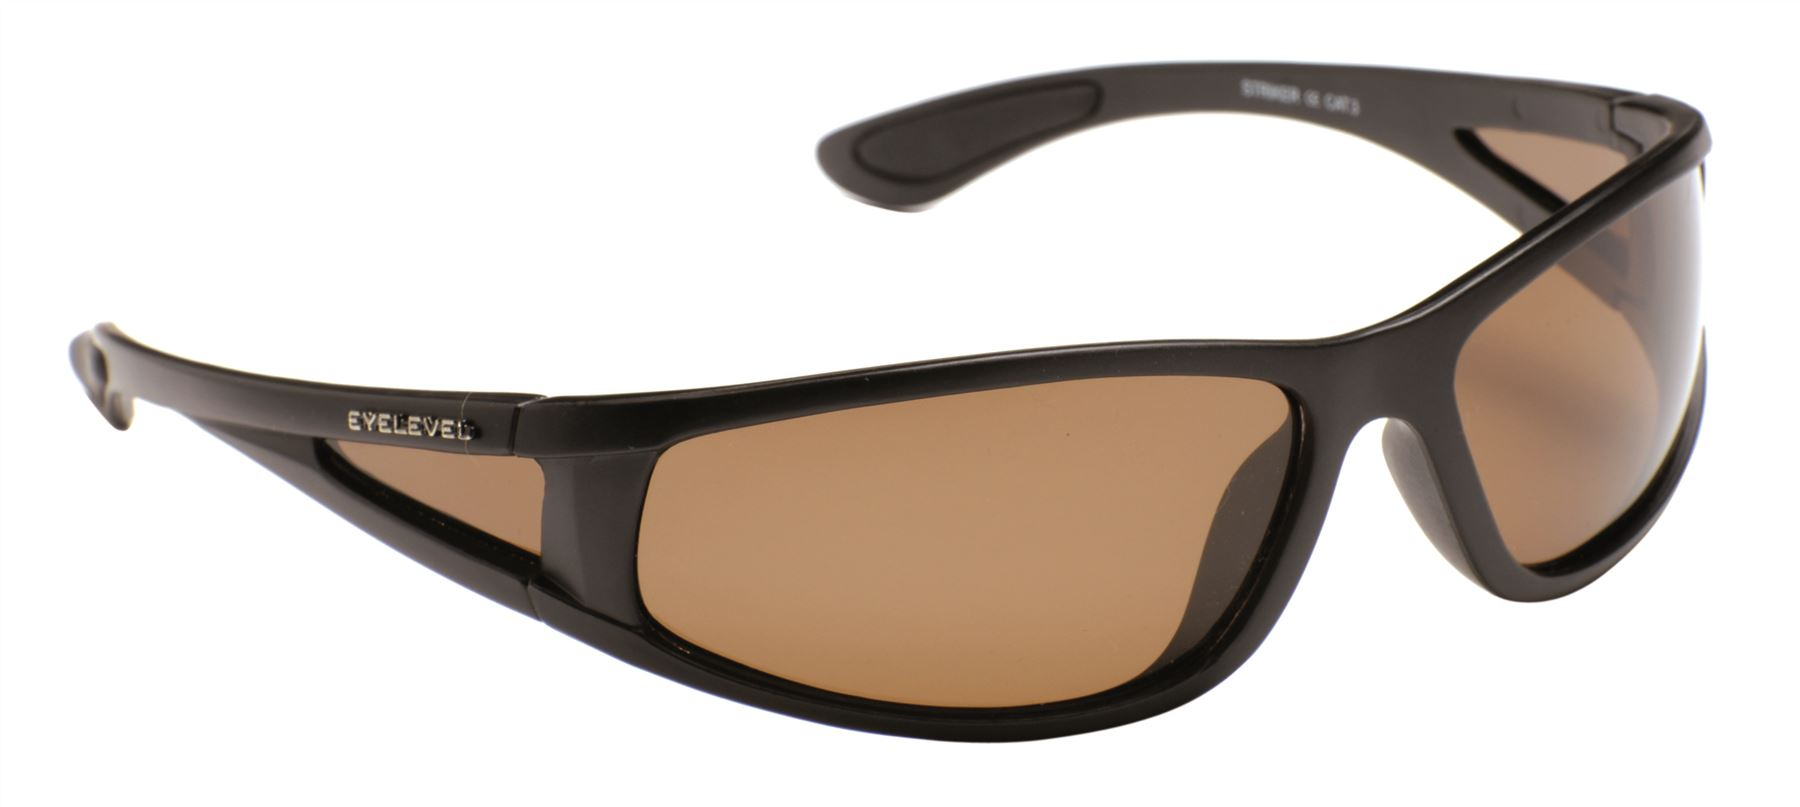 Striker Sunglasses with Side Shield - Brown Lens